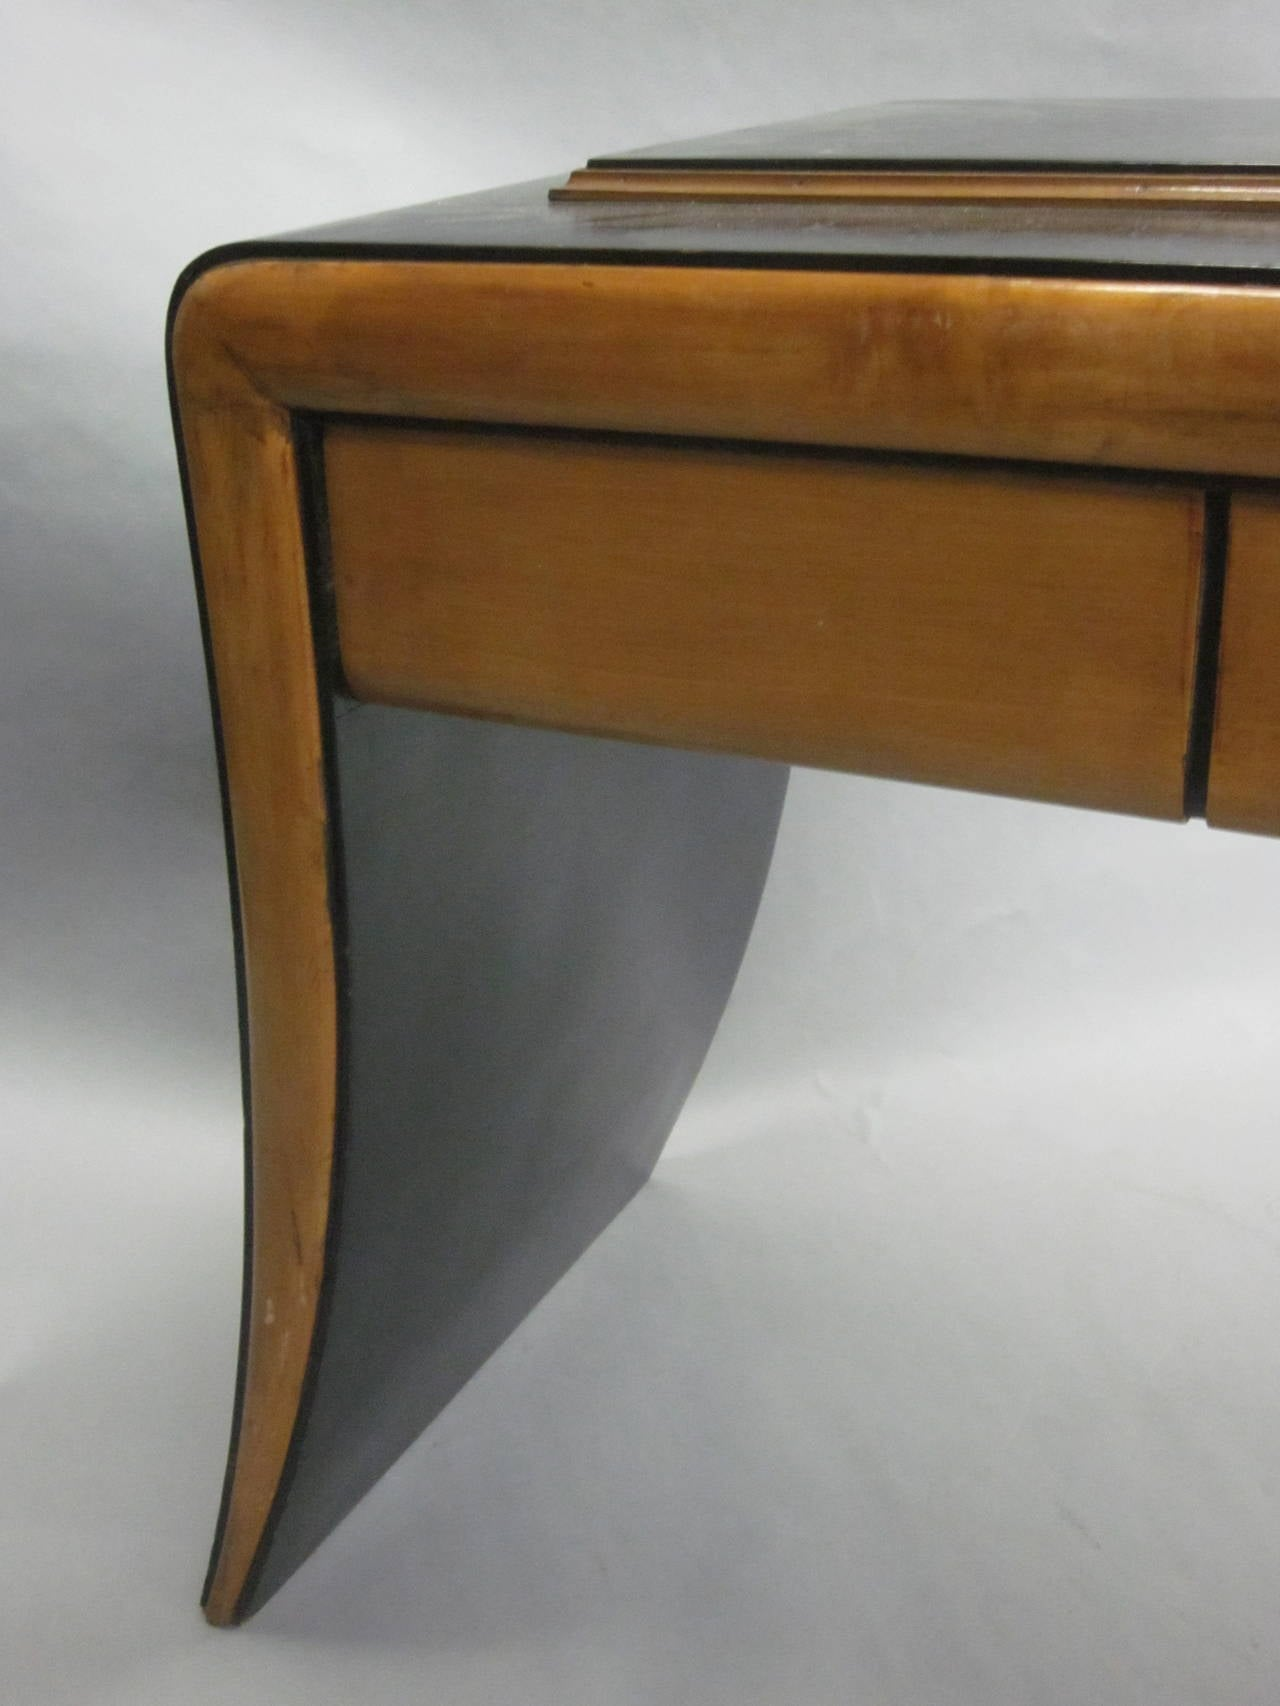 Italian Art Deco / Modern Neoclassical Vanity / Sofa Table by Paolo Buffa, 1930 For Sale 2